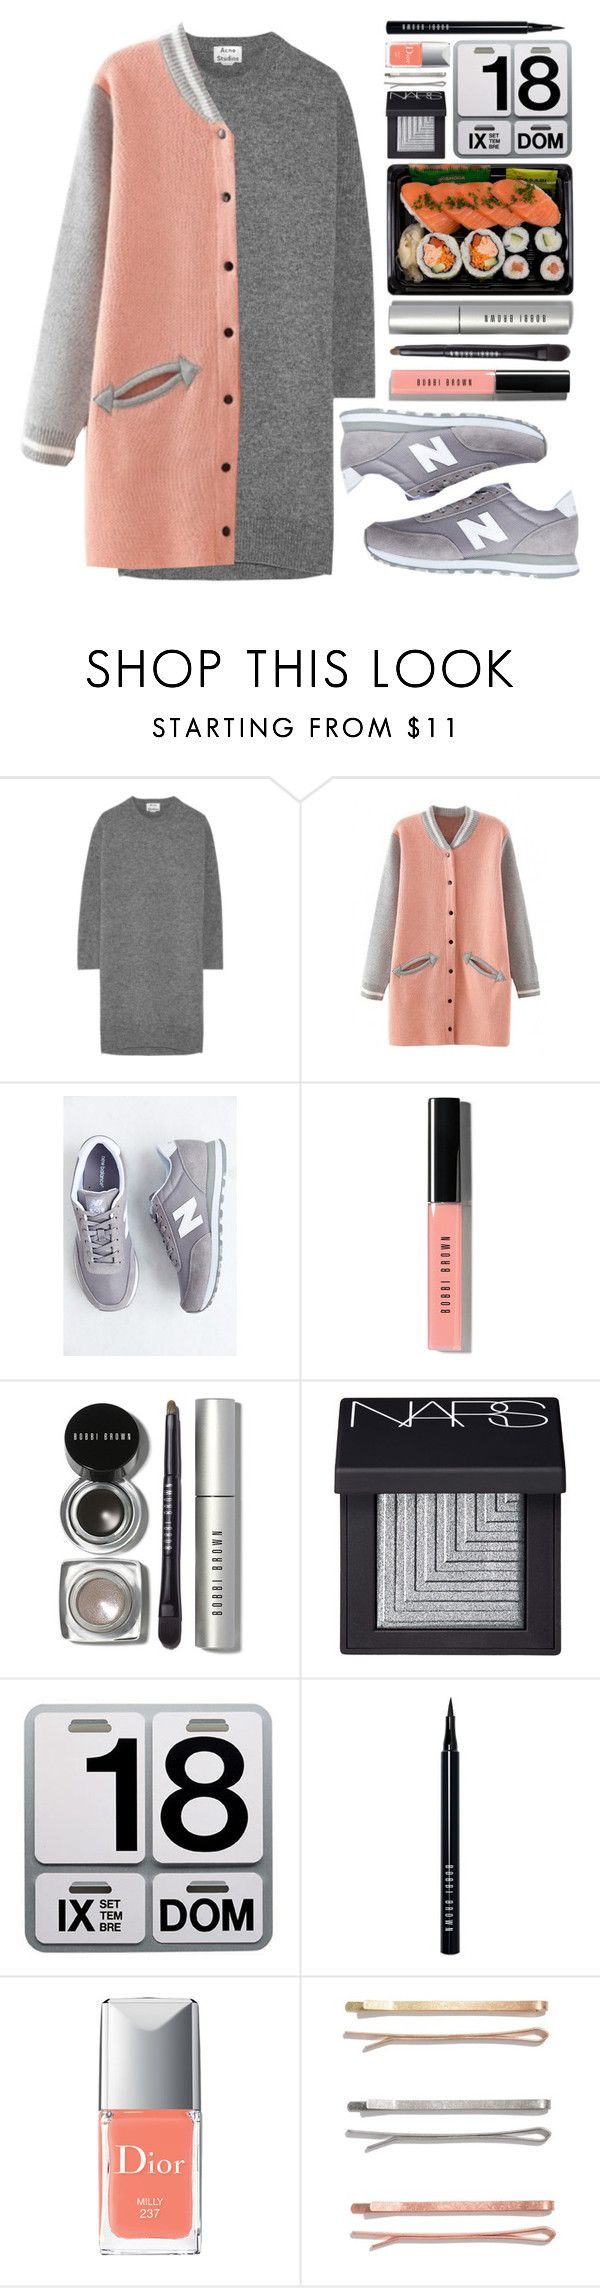 """#742 Kim"" by blueberrylexie ❤ liked on Polyvore featuring Acne Studios, New Balance, Bobbi Brown Cosmetics, NARS Cosmetics, Danese, Christian Dior and Madewell"